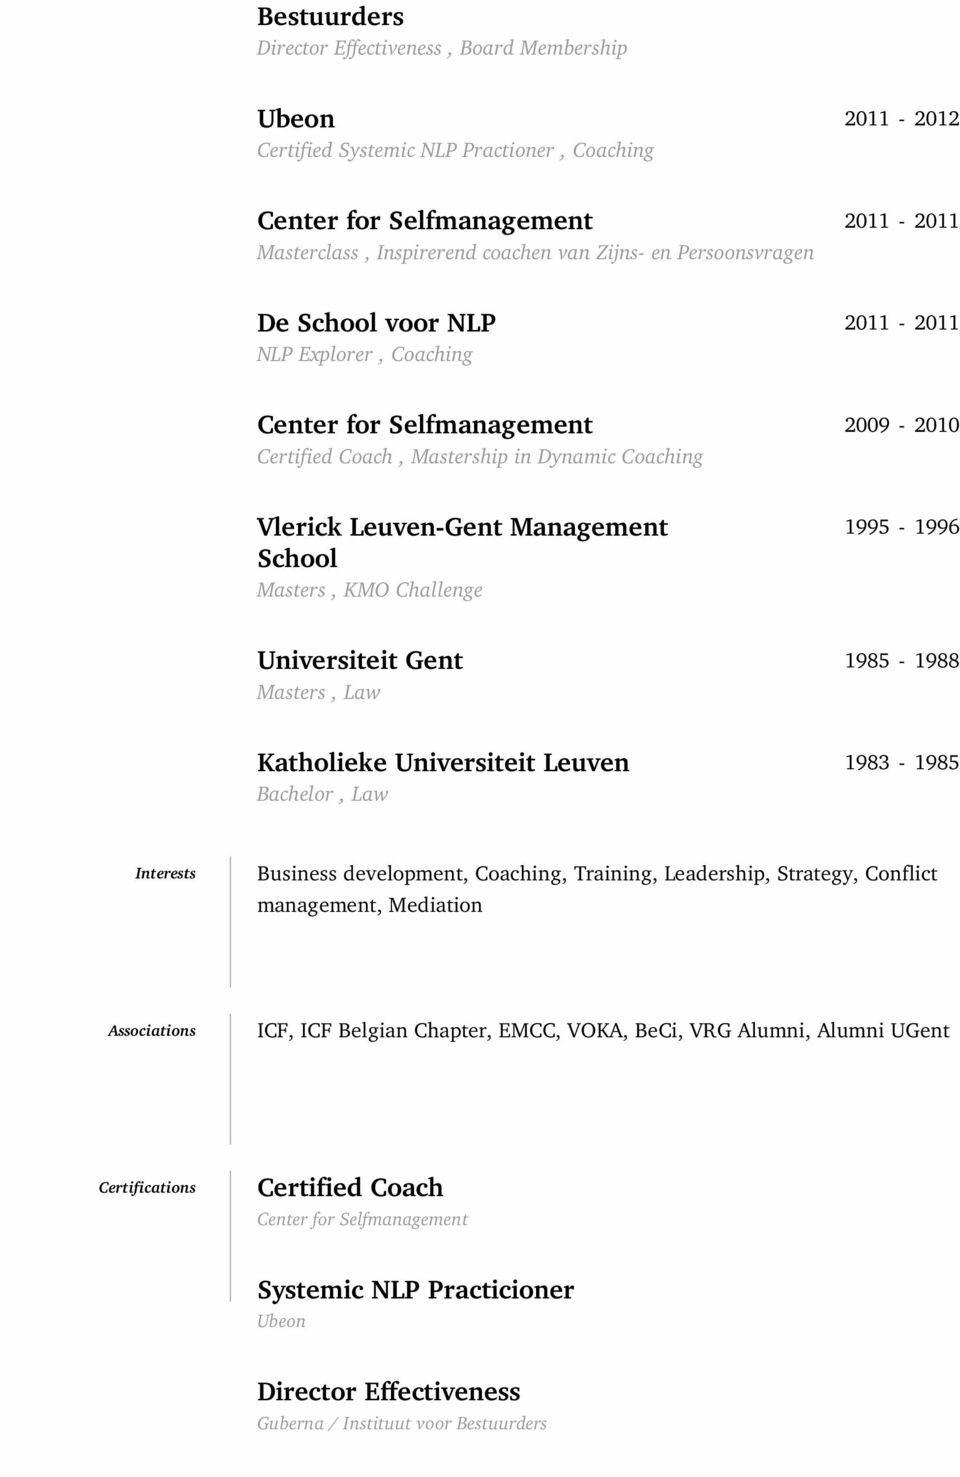 Masters, Law 1985-1988 Katholieke Universiteit Leuven Bachelor, Law 1983-1985 Interests Business development, Coaching, Training, Leadership, Strategy, Conflict management, Mediation